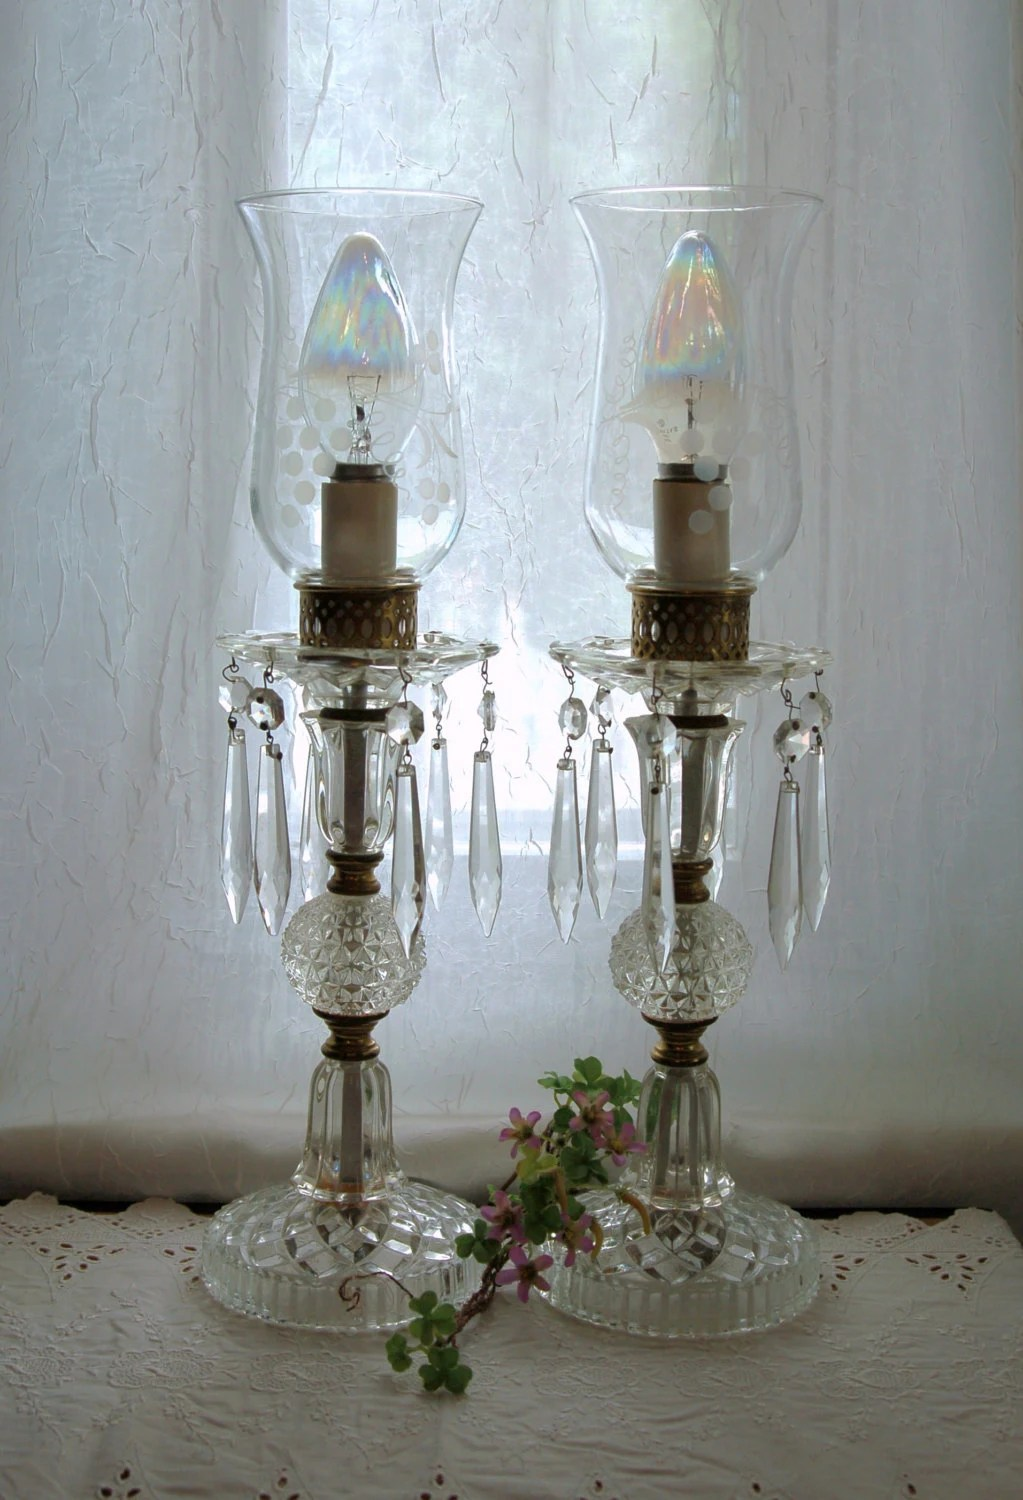 Vintage Crystal Lamps For The Boudoir Or Buffet Antique Lamps